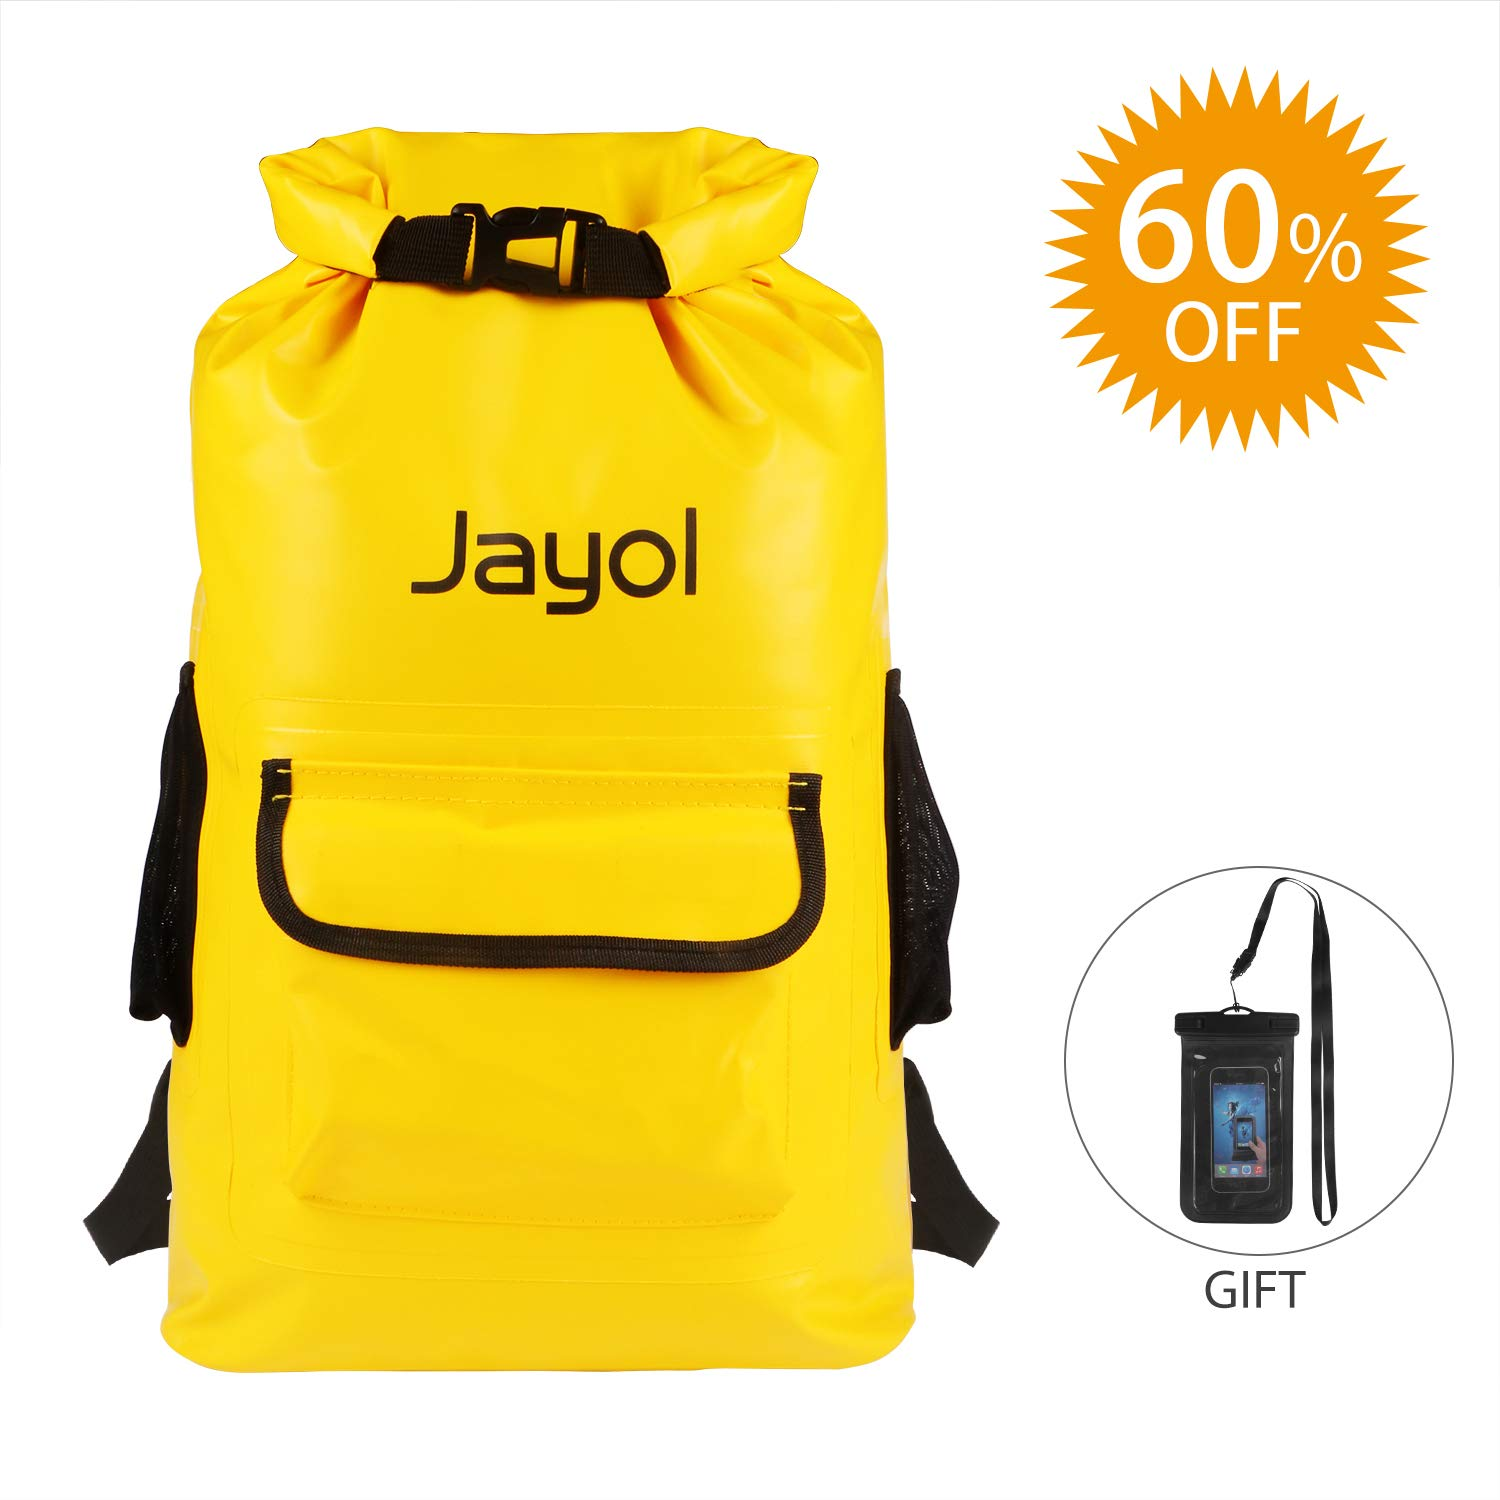 Jayol Waterproof Dry Bags,Sack Backpack with Phone Case, Super Lightweight Bags